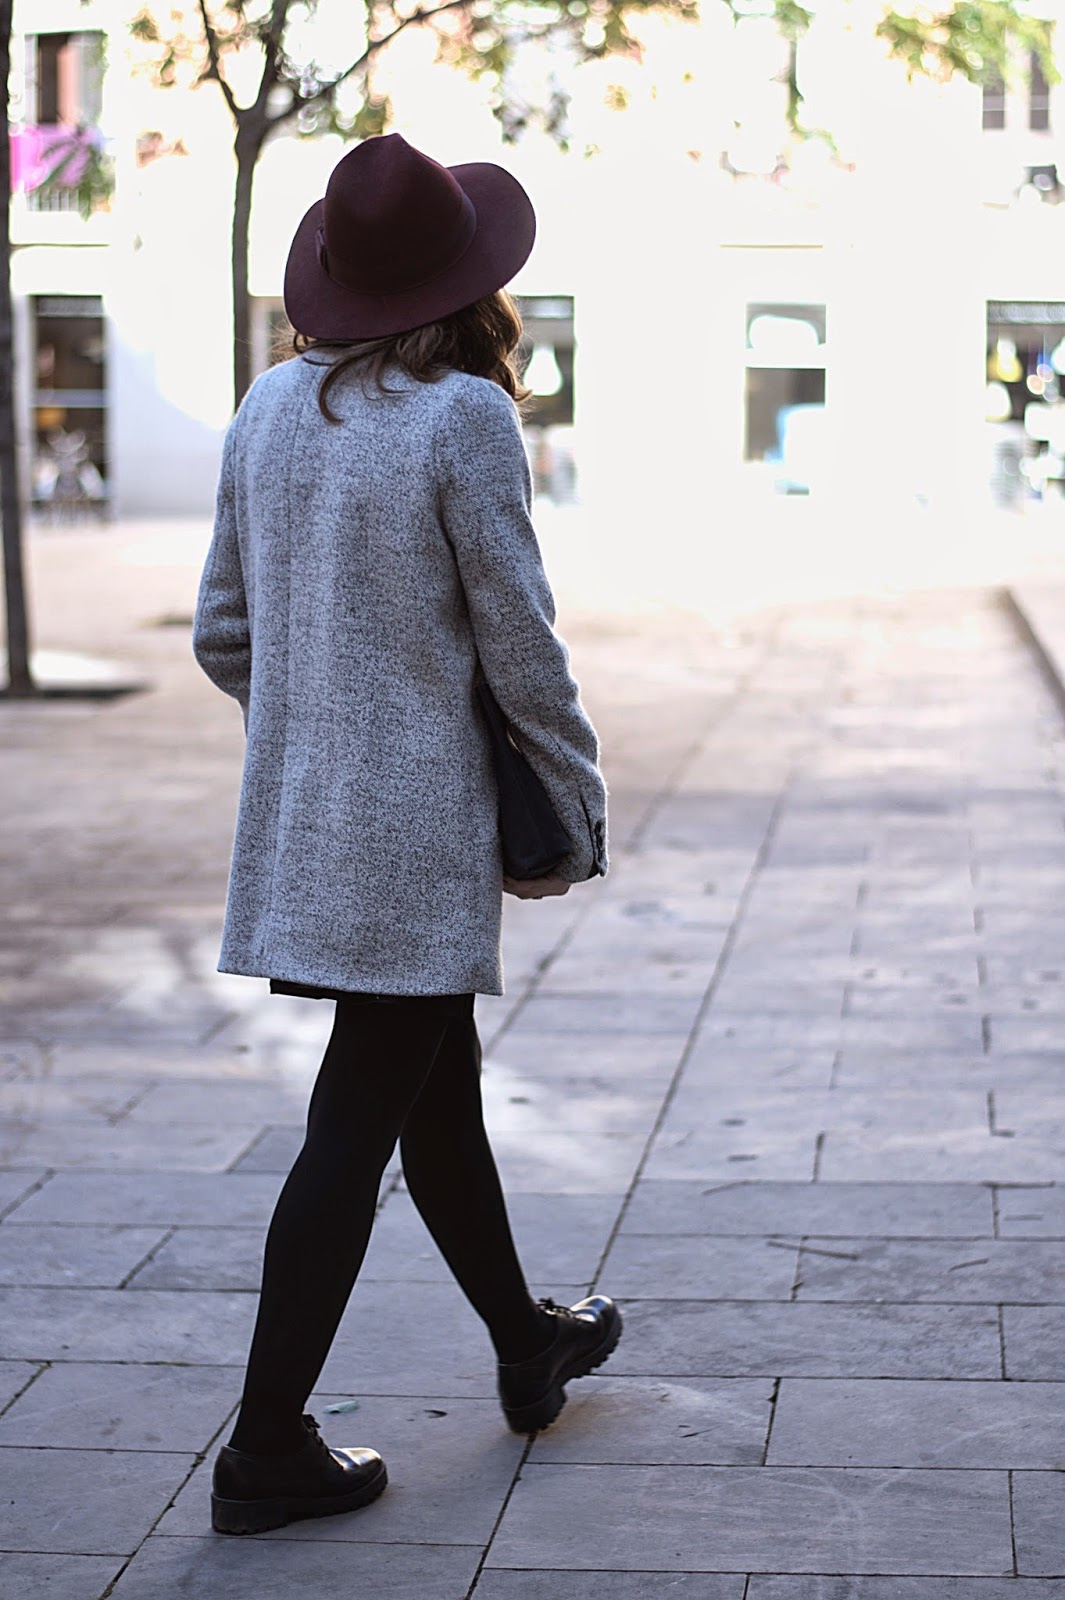 Vestido y clutch vintage, jersey Pull & Bear, sombrero H&M, zapatos Urban Outfitters